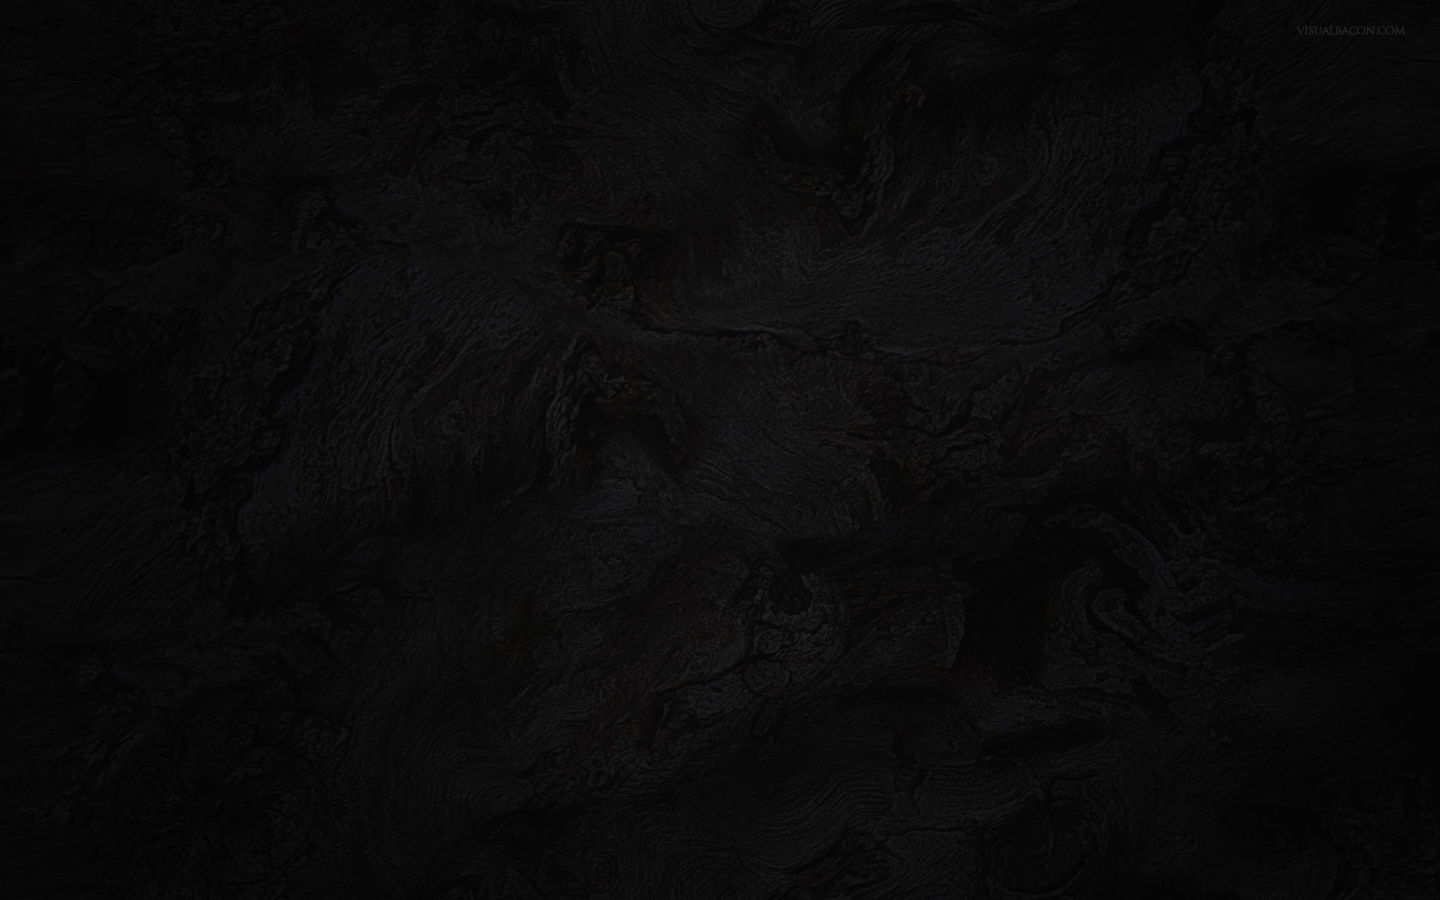 DarkGreyBackgroundTexture04